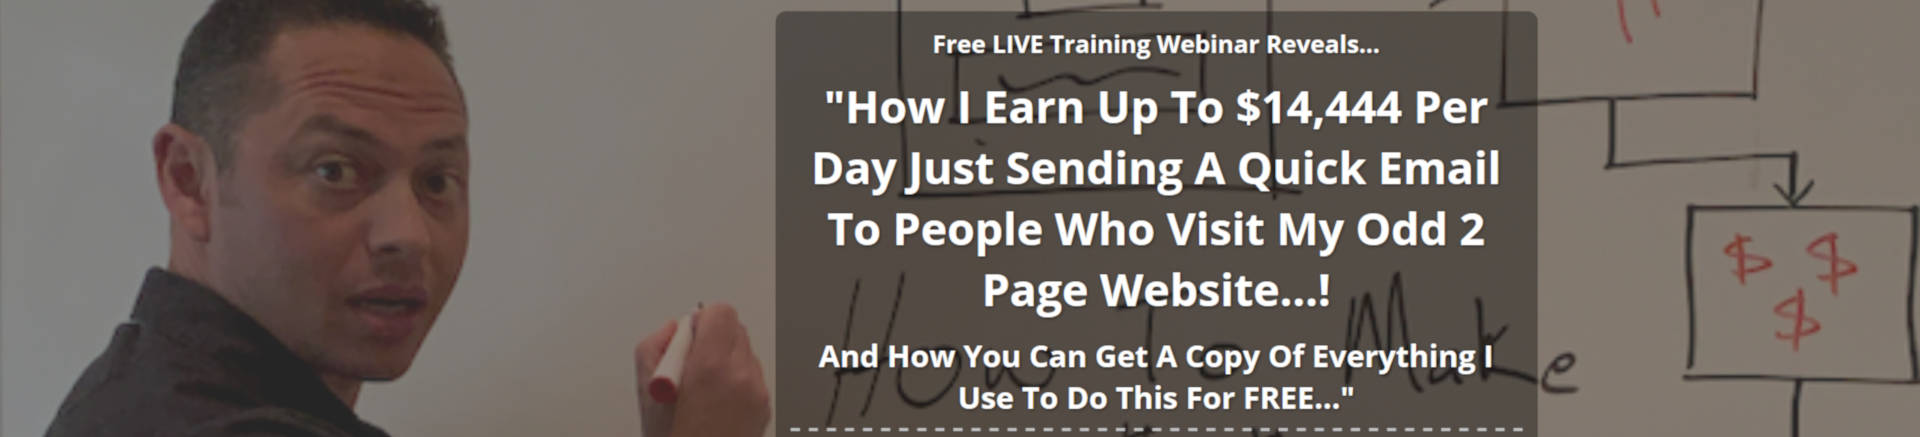 Buy 1k A Day Fast Track Training Program  Price Cash